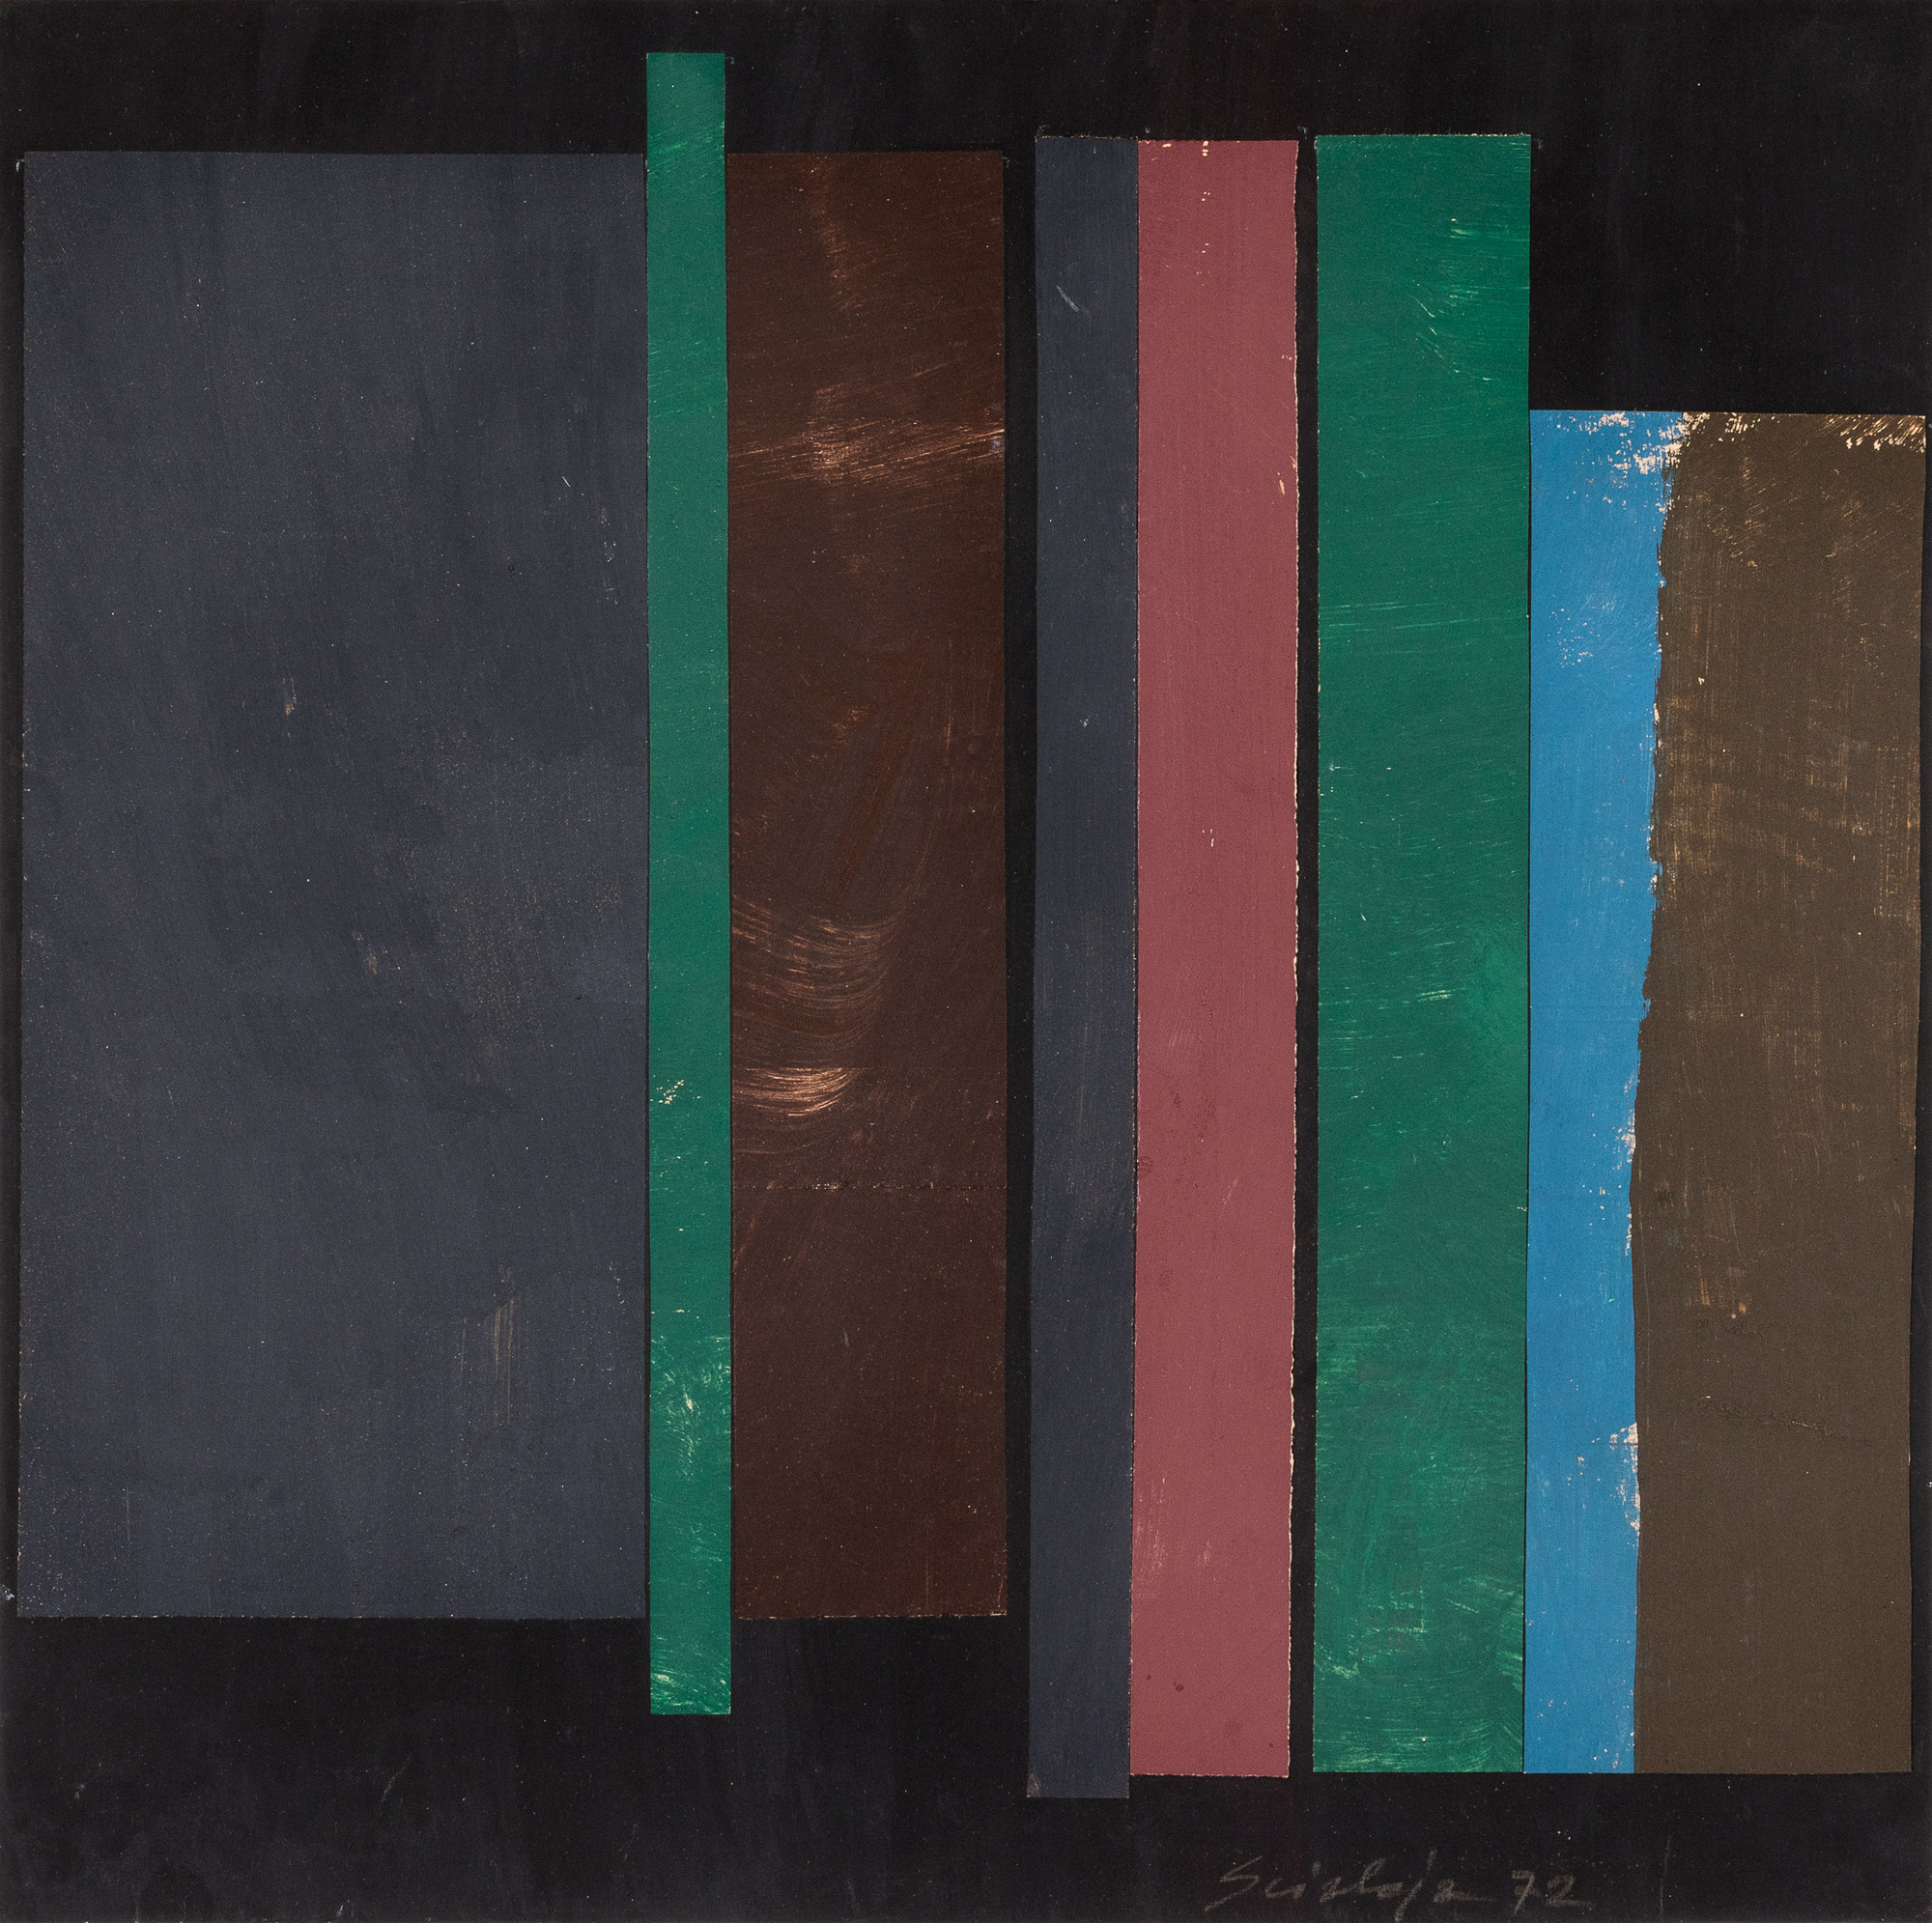 Collage, 1972